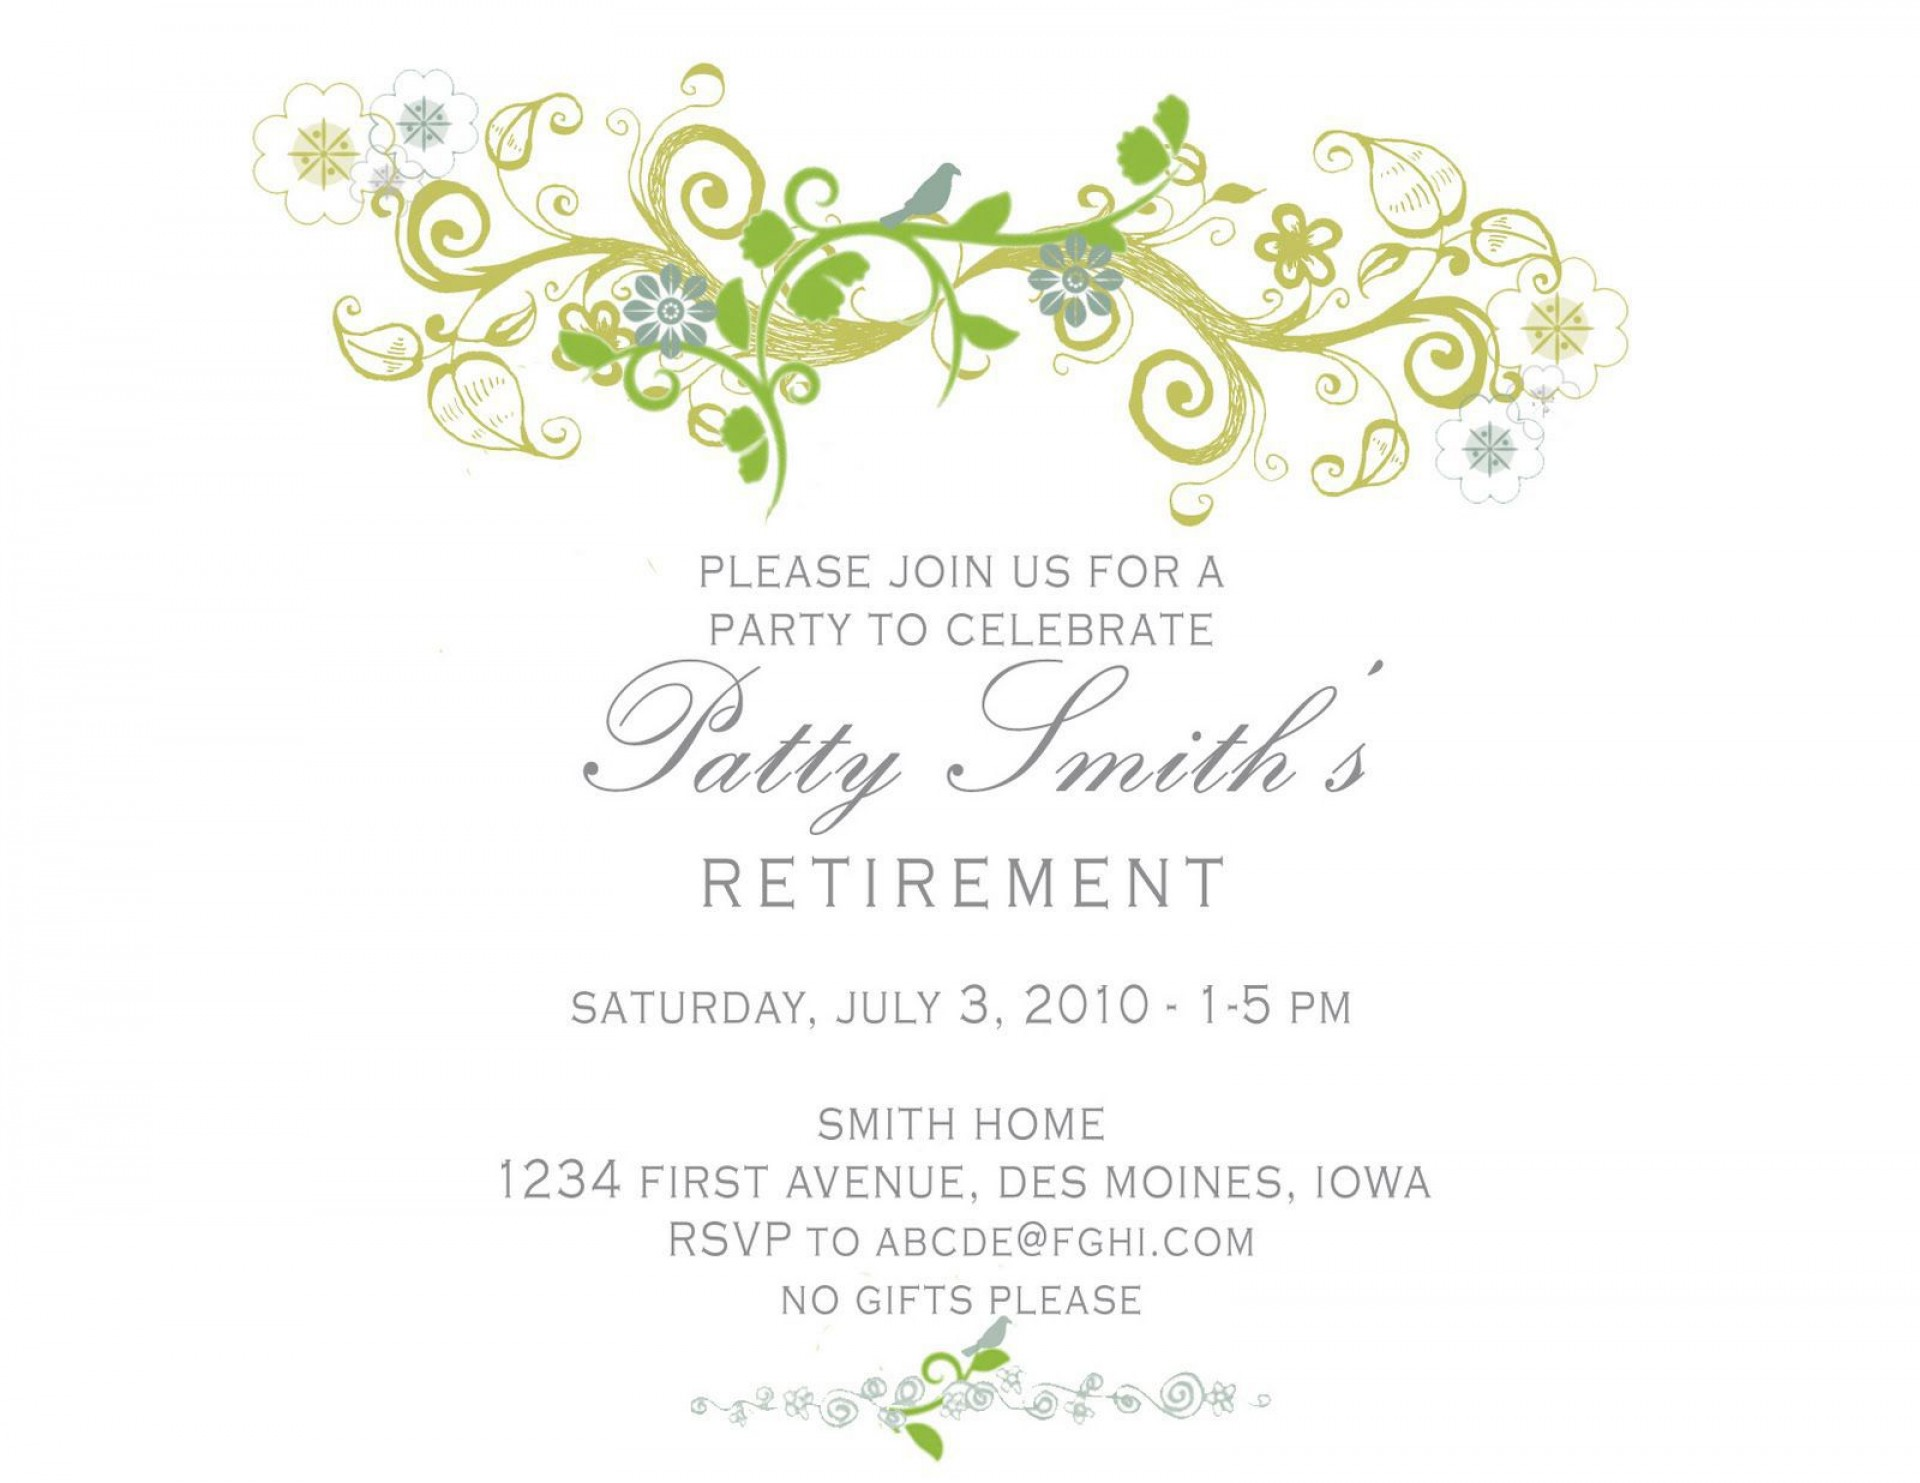 005 Simple Free Retirement Invitation Template Design  Templates Microsoft Word Party Flyer1920